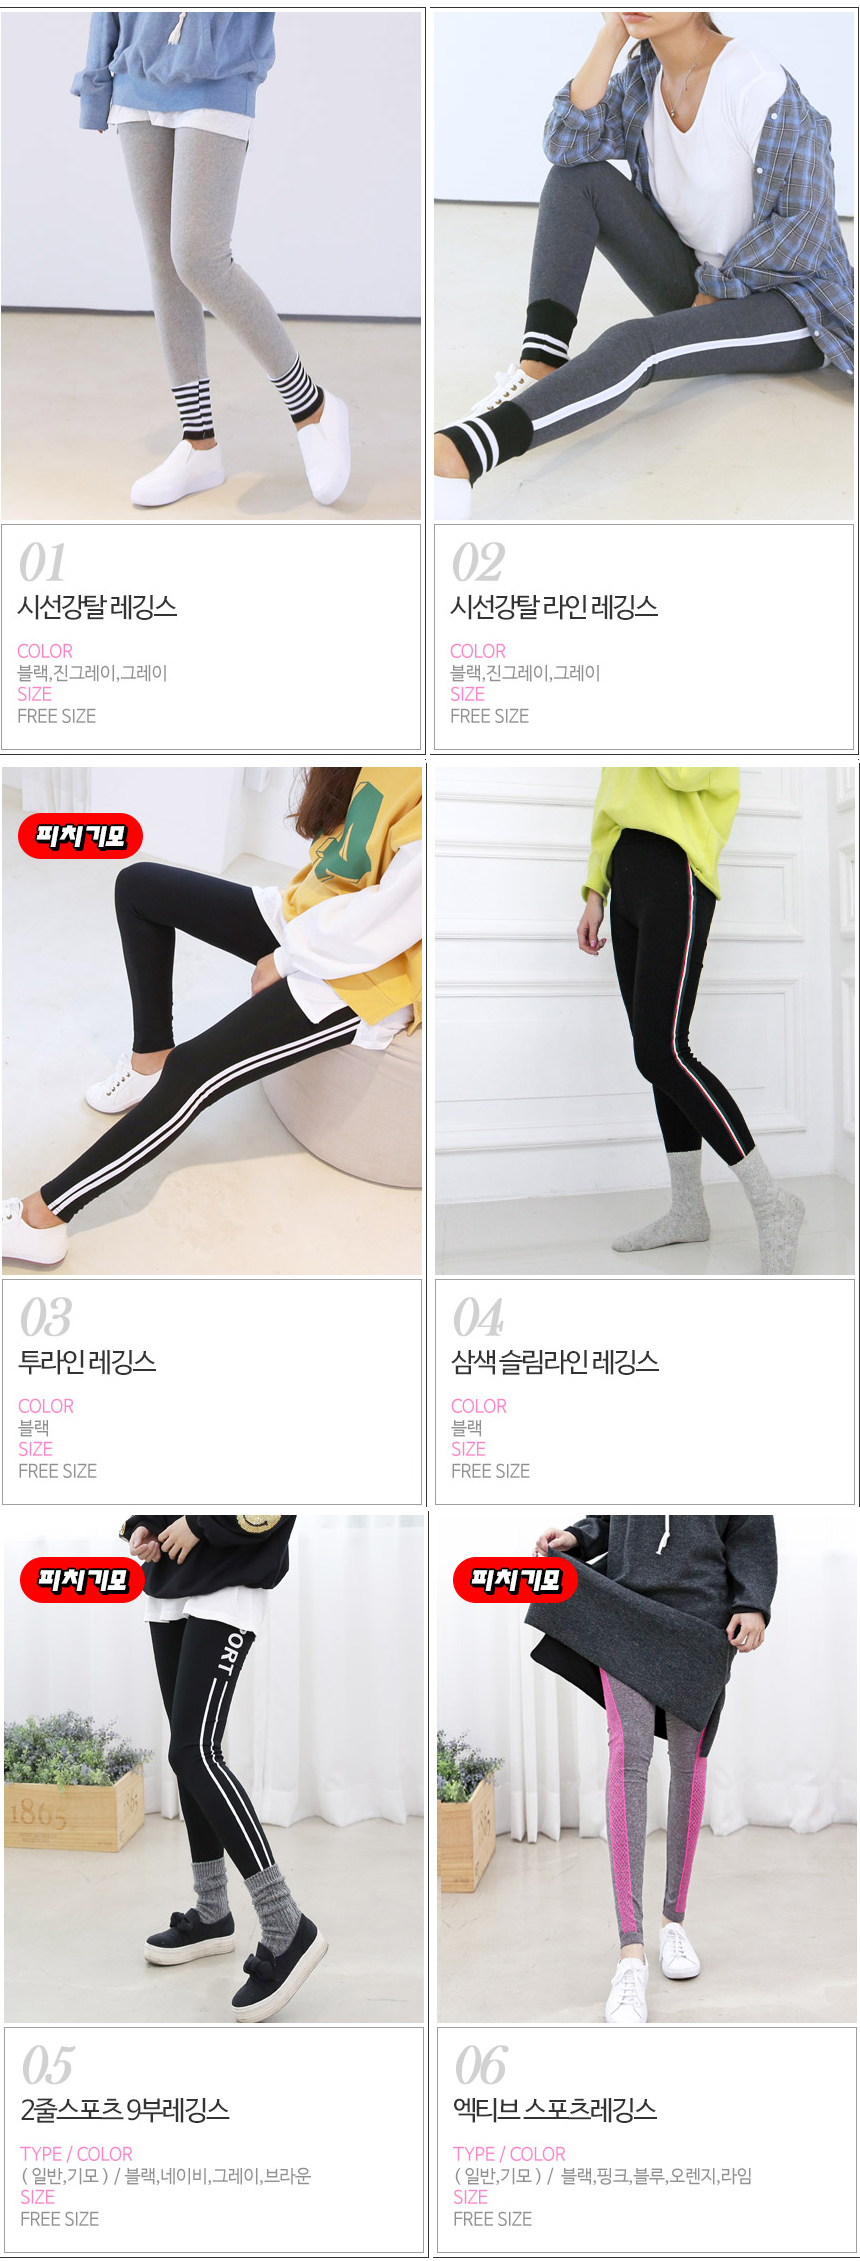 winter_leggings_002.jpg